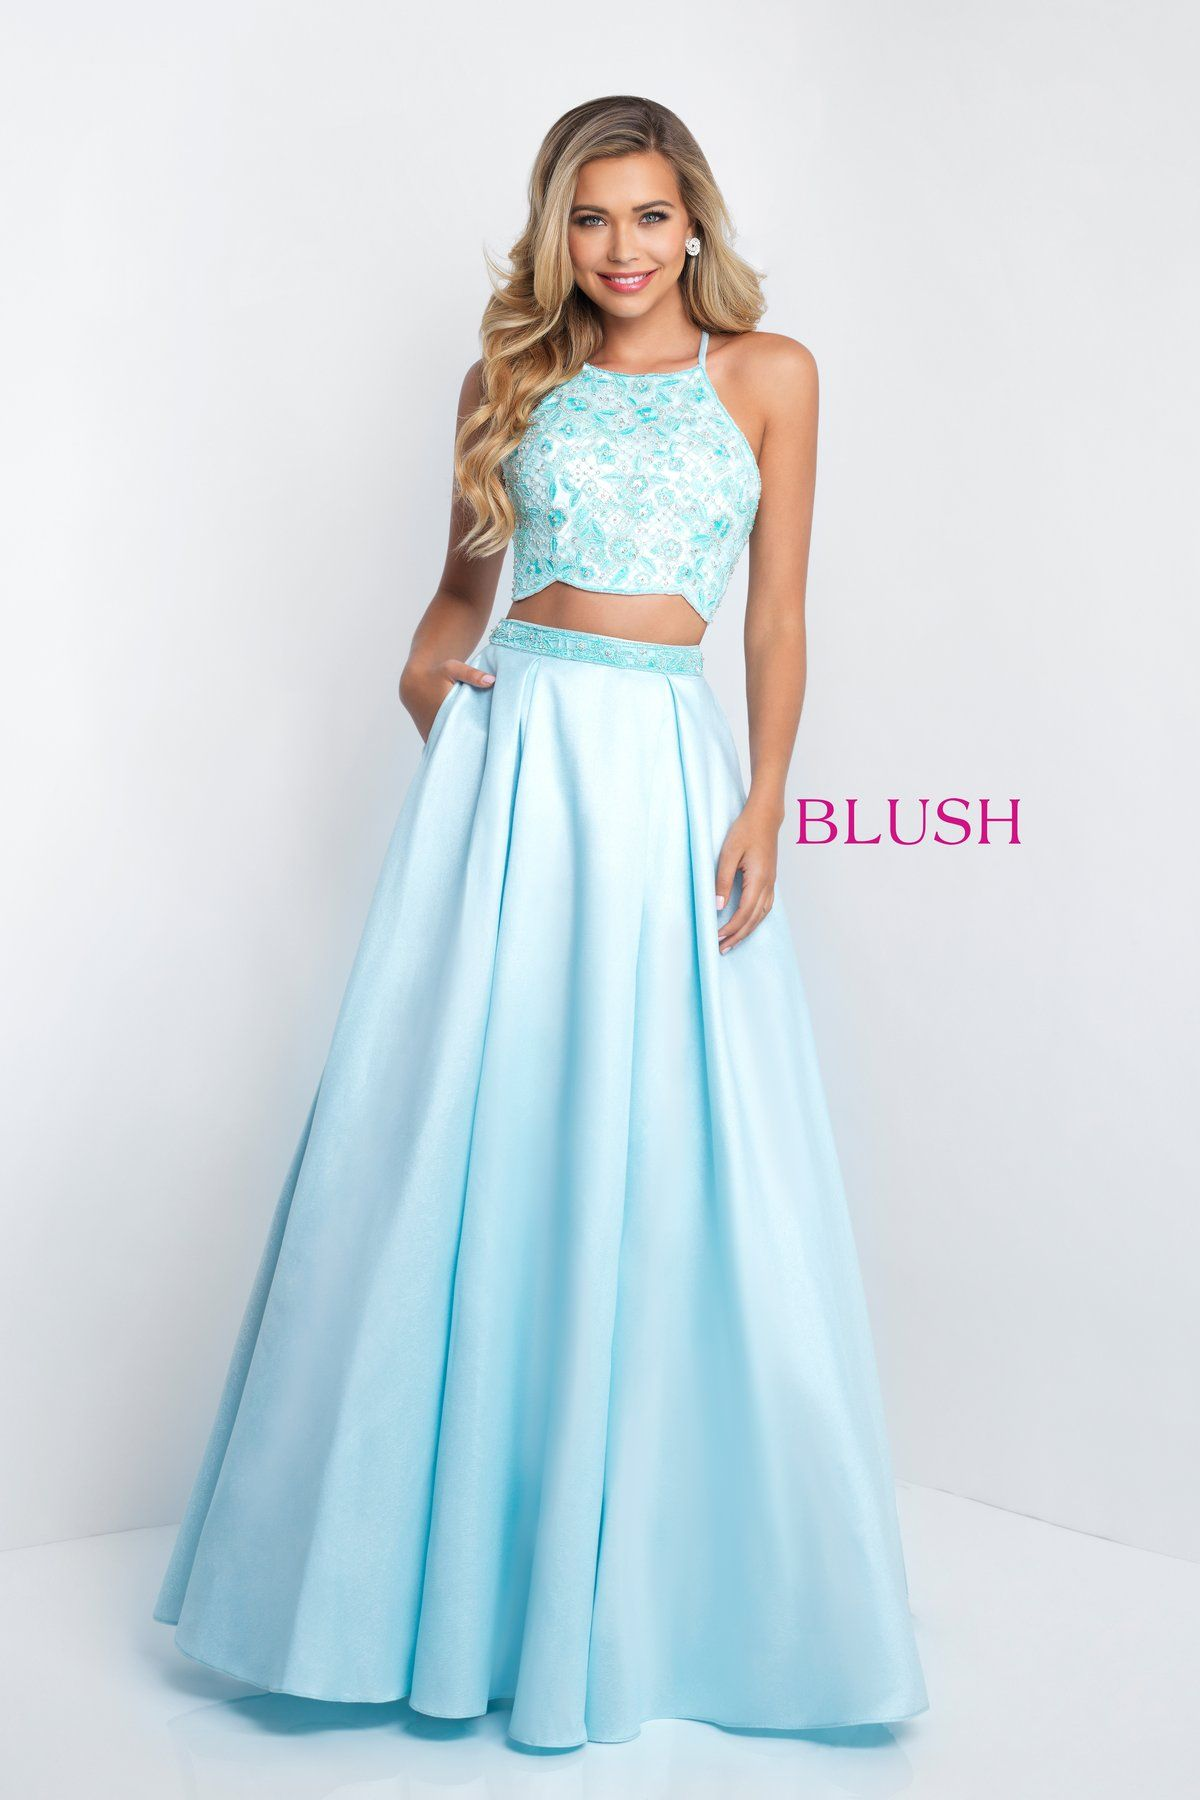 Dorable Sadies Prom Dresses Picture Collection - All Wedding Dresses ...